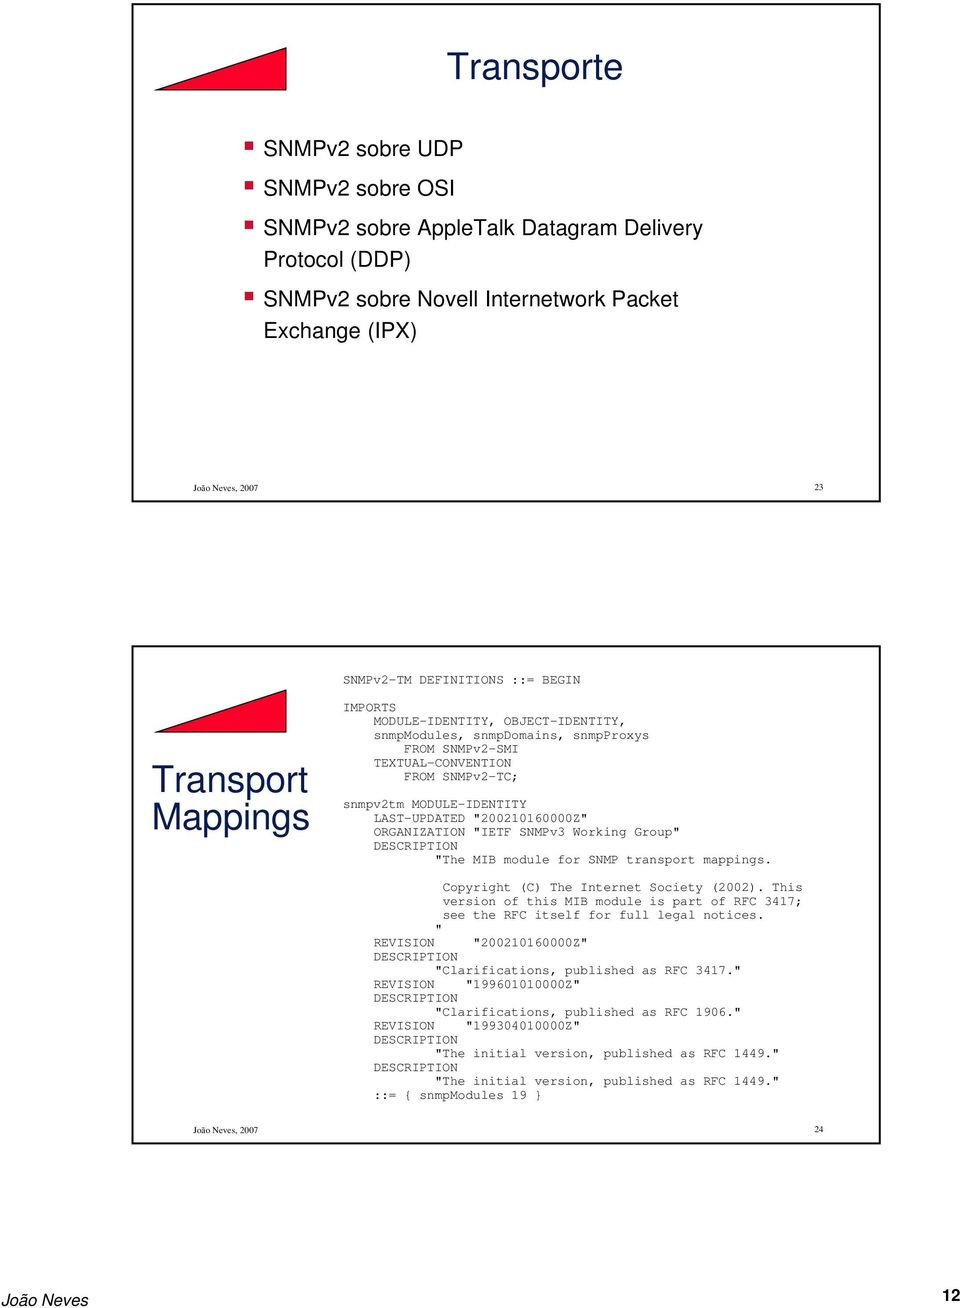 "Working Group"" ""The MIB module for SNMP transport mappings. Copyright (C) The Internet Society (2002). This version of this MIB module is part of RFC 3417; see the RFC itself for full legal notices."